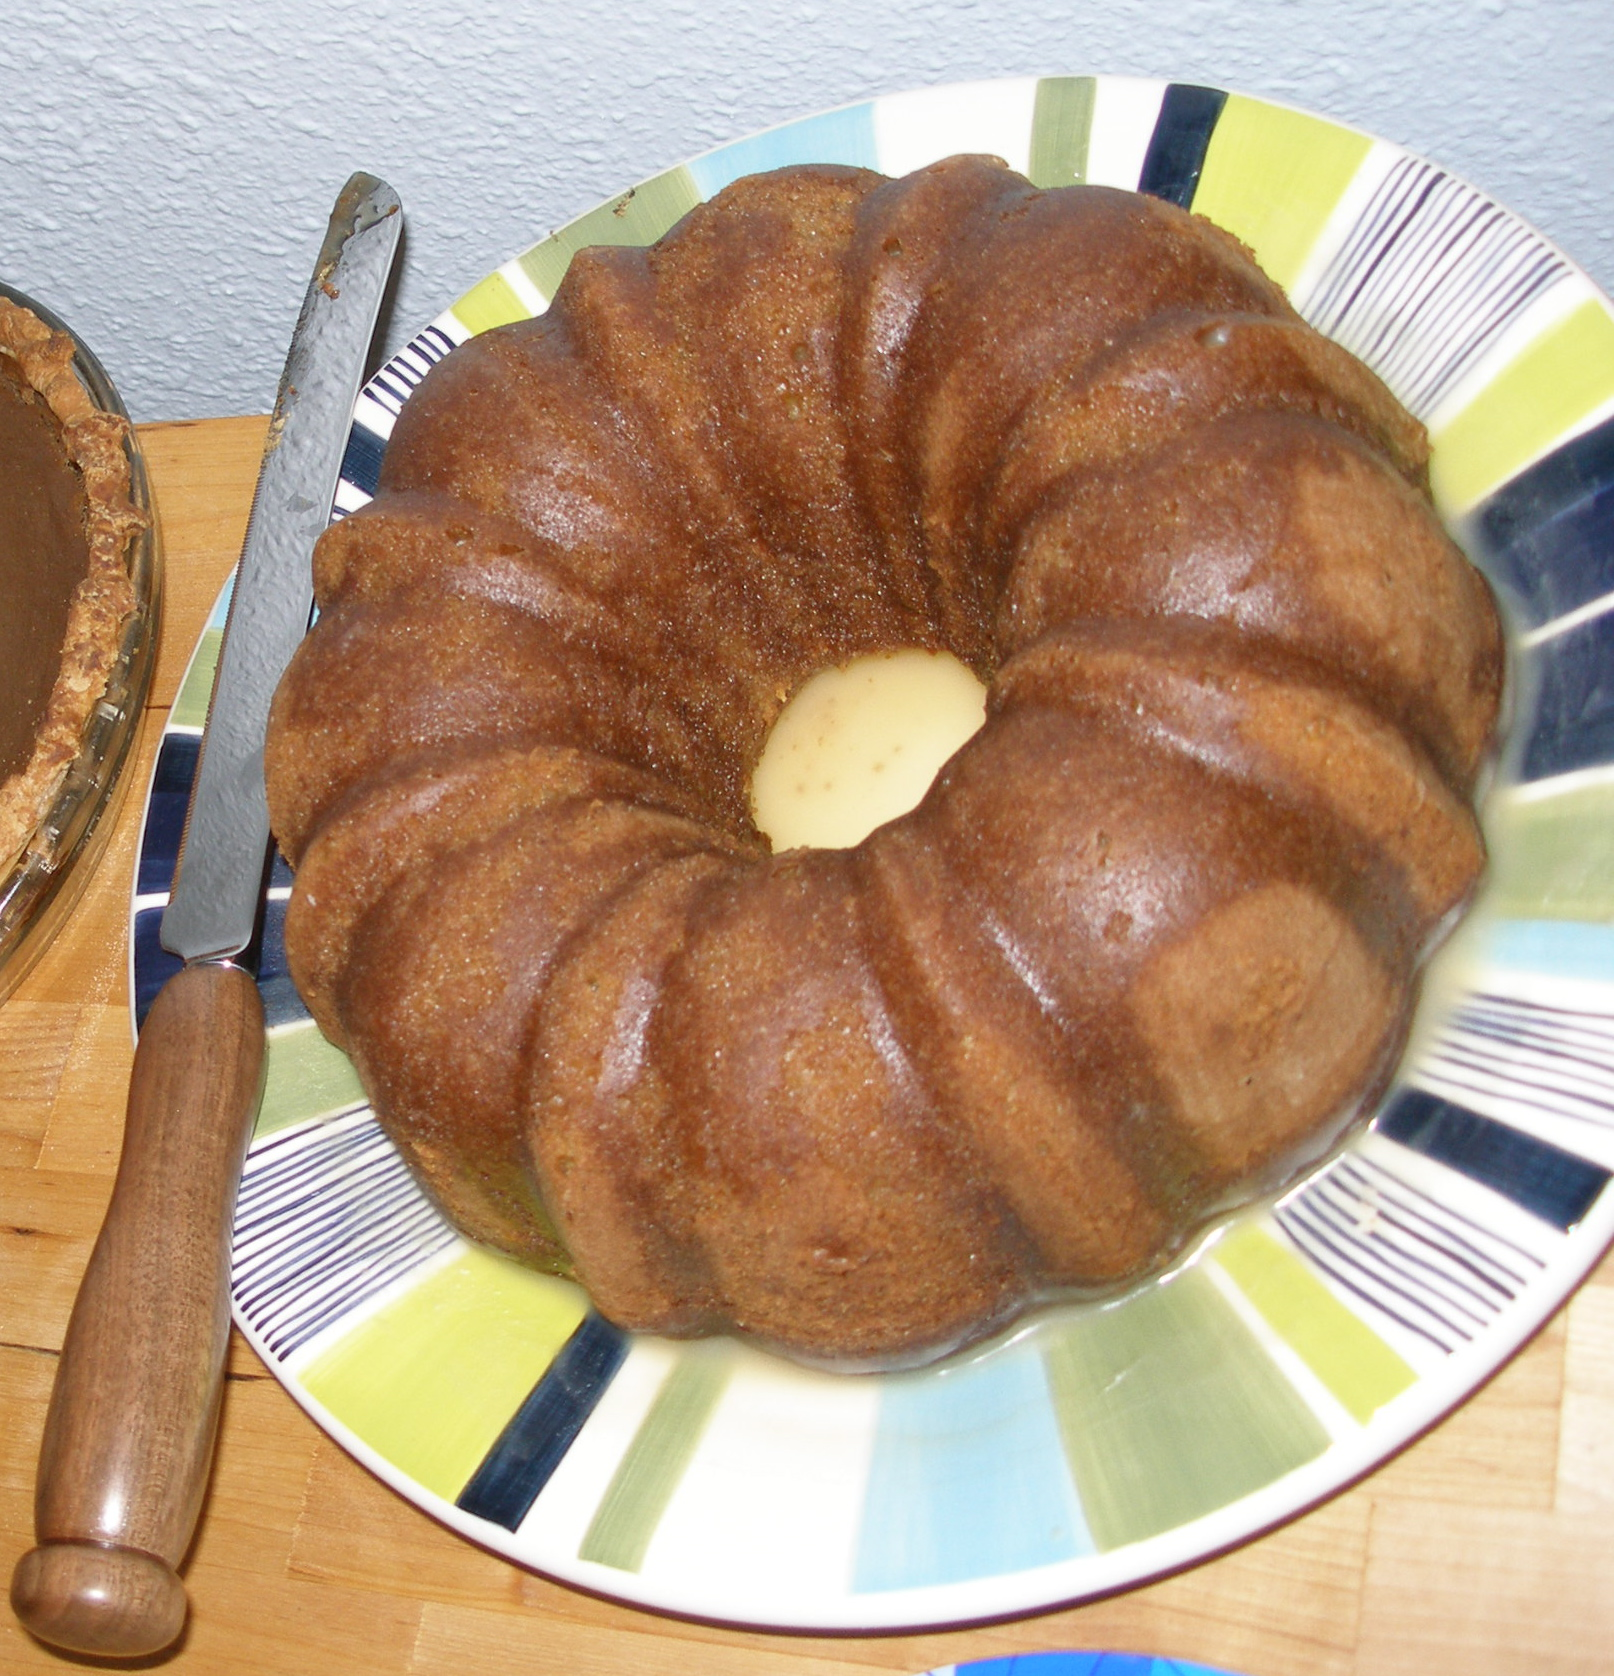 Janet's Cardamom Cake with Brown Sugar Icing